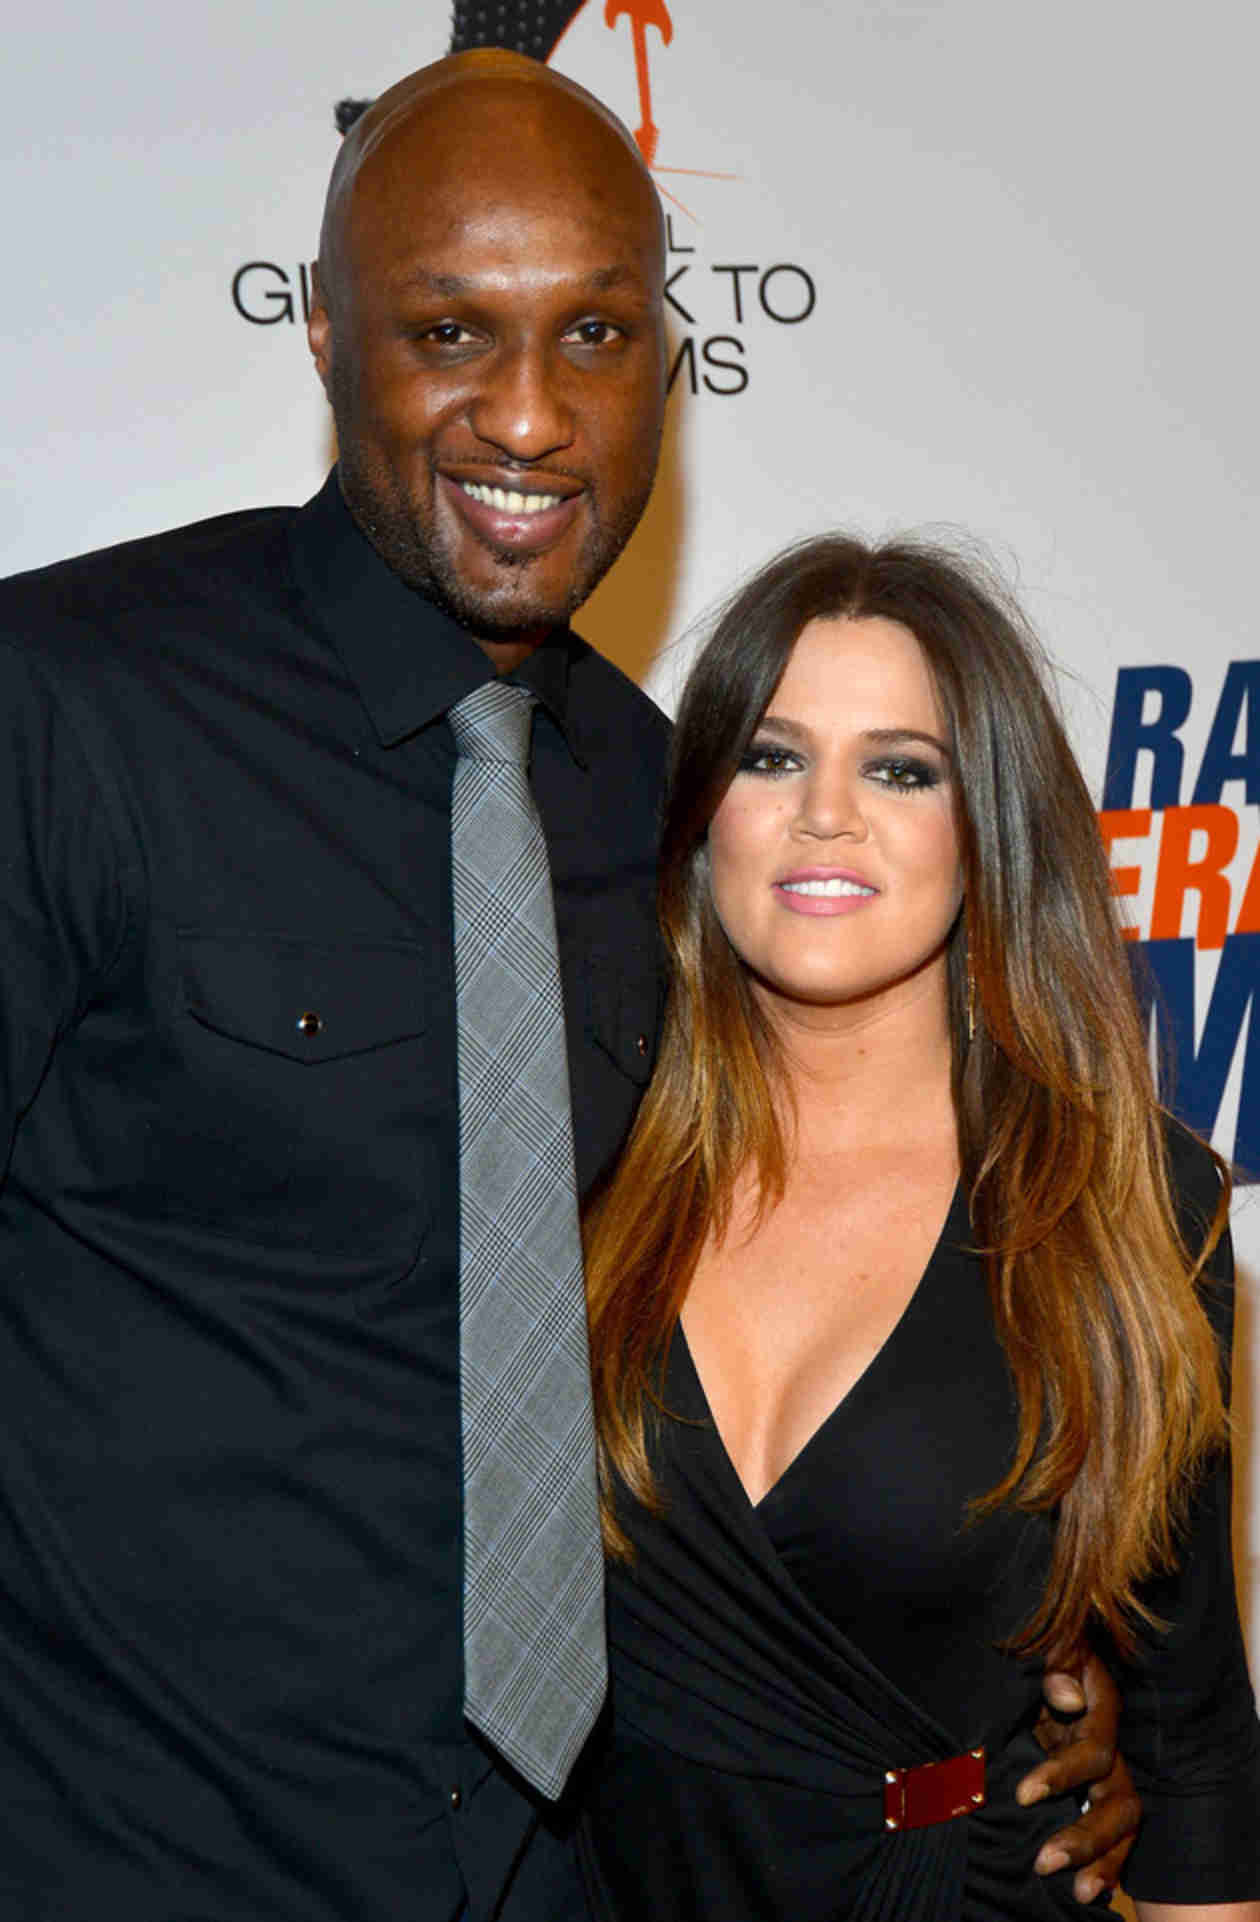 Kris Jenner Wants Khloe Kardashian Back With Lamar Odom For Ratings — Report